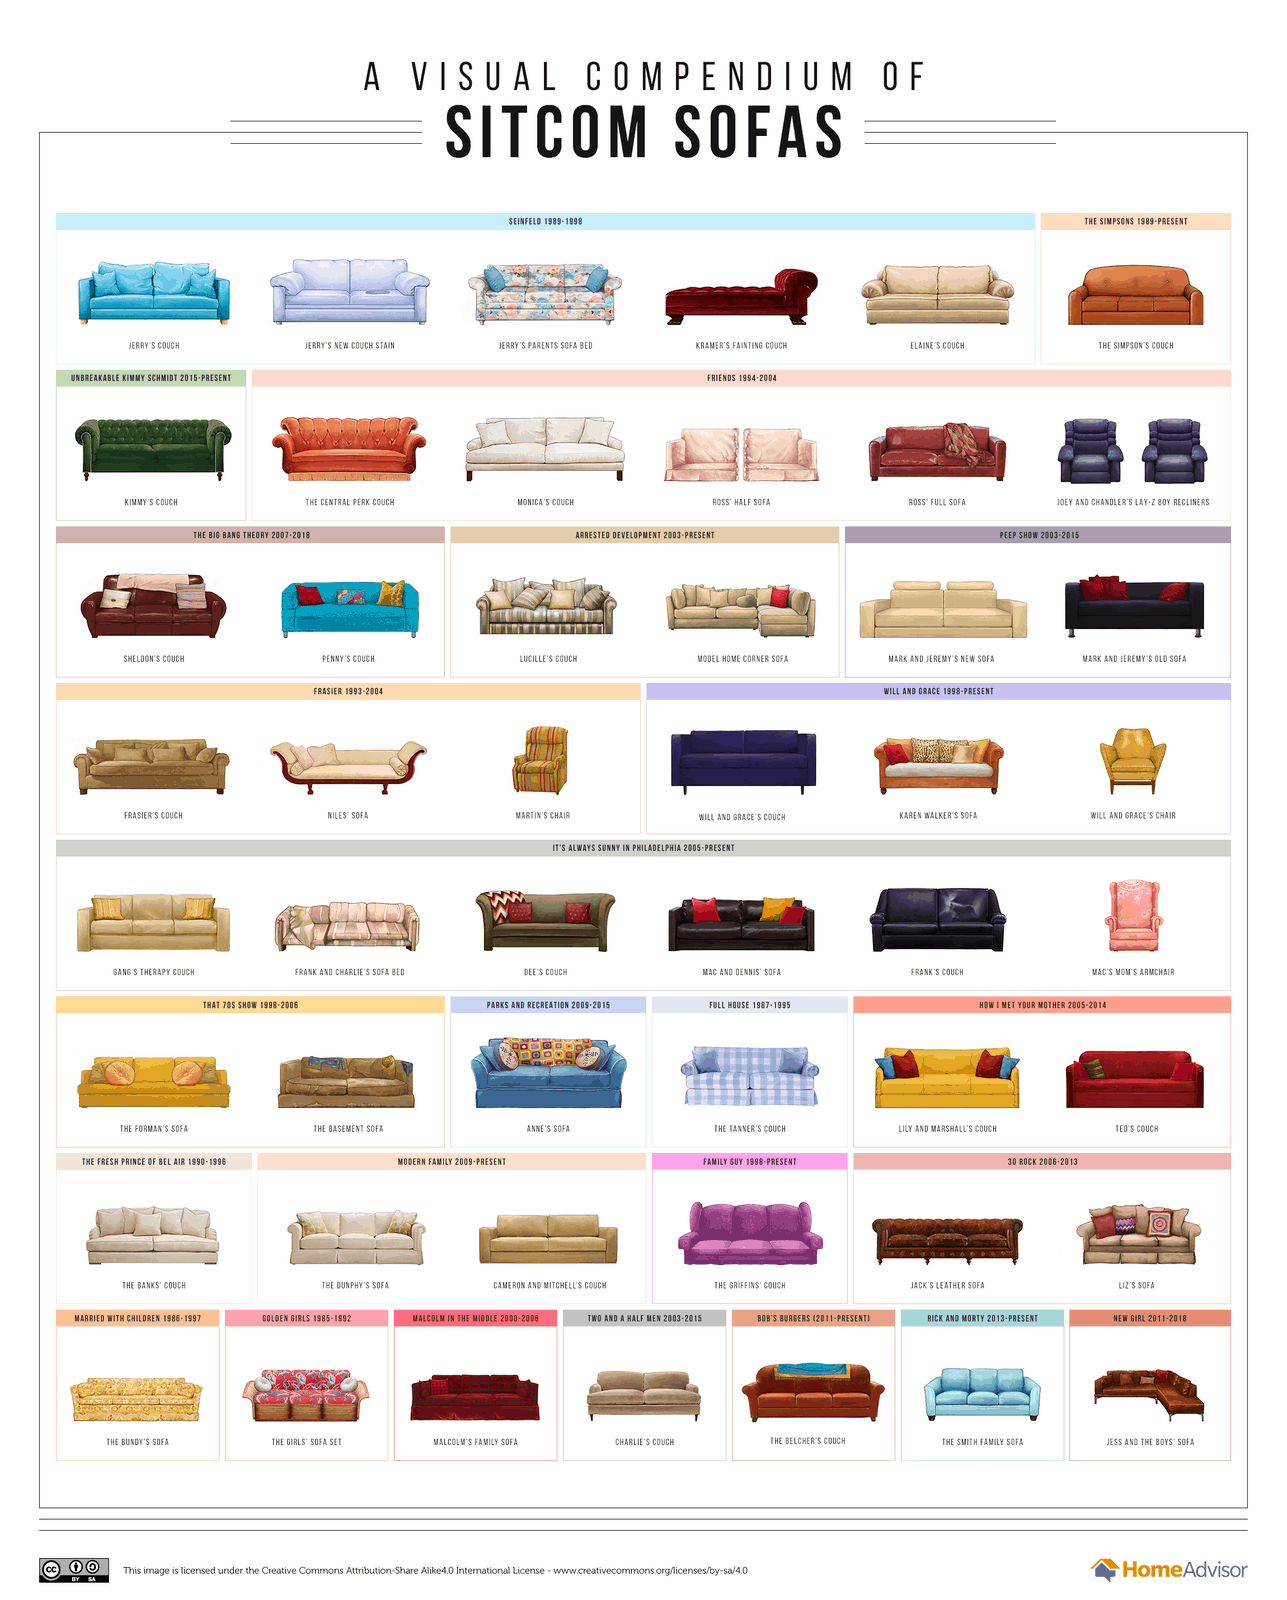 A visual compendium of sitcom sofas